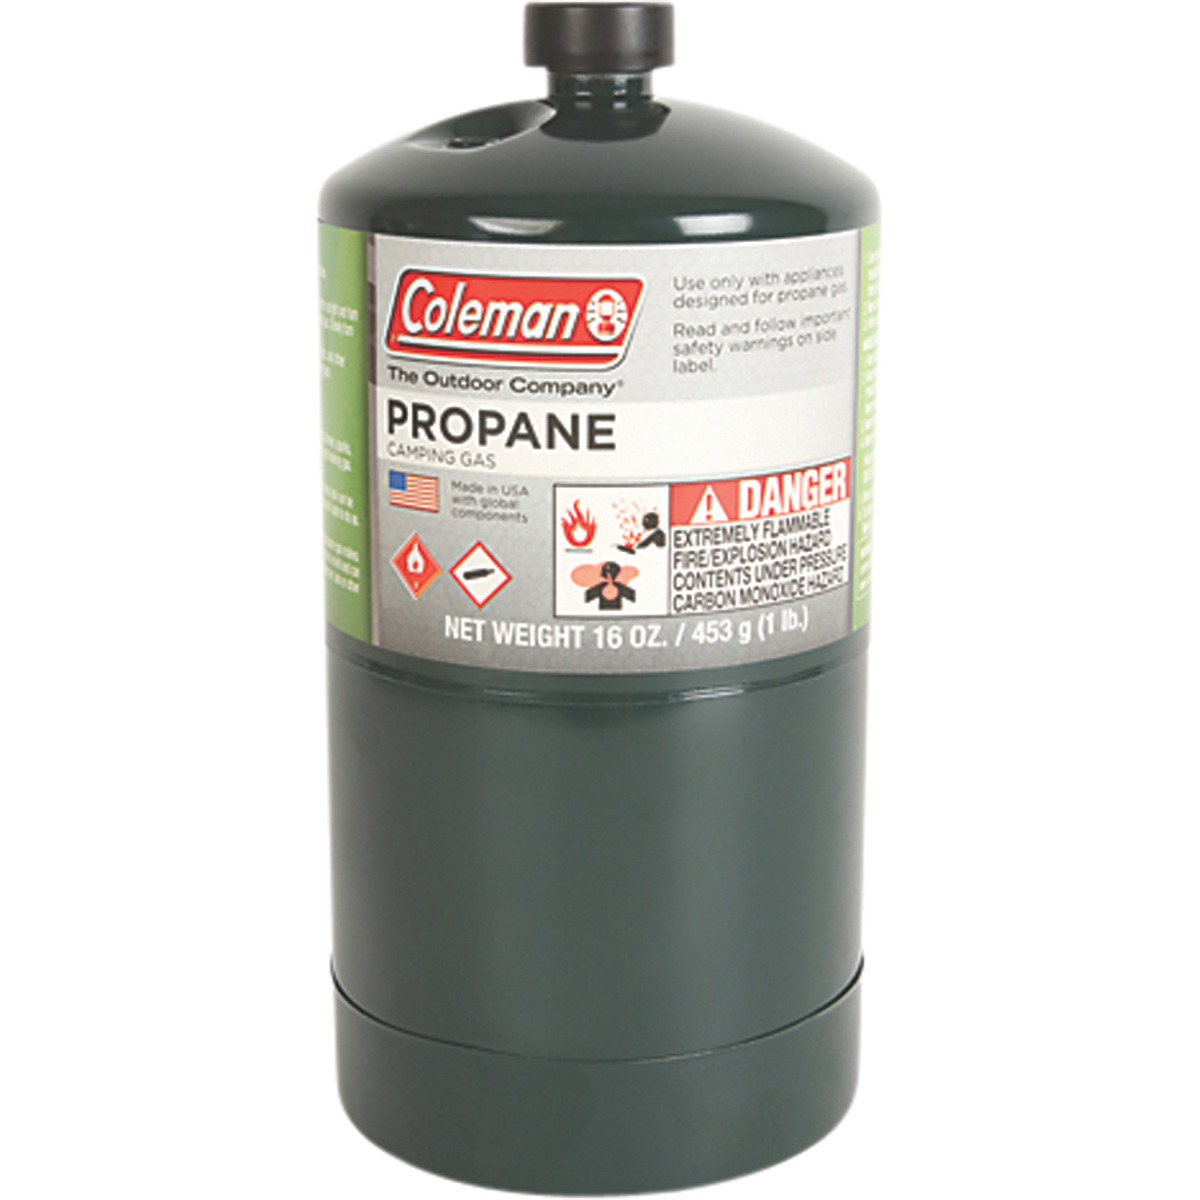 coleman propane camping gas 453grams. Black Bedroom Furniture Sets. Home Design Ideas